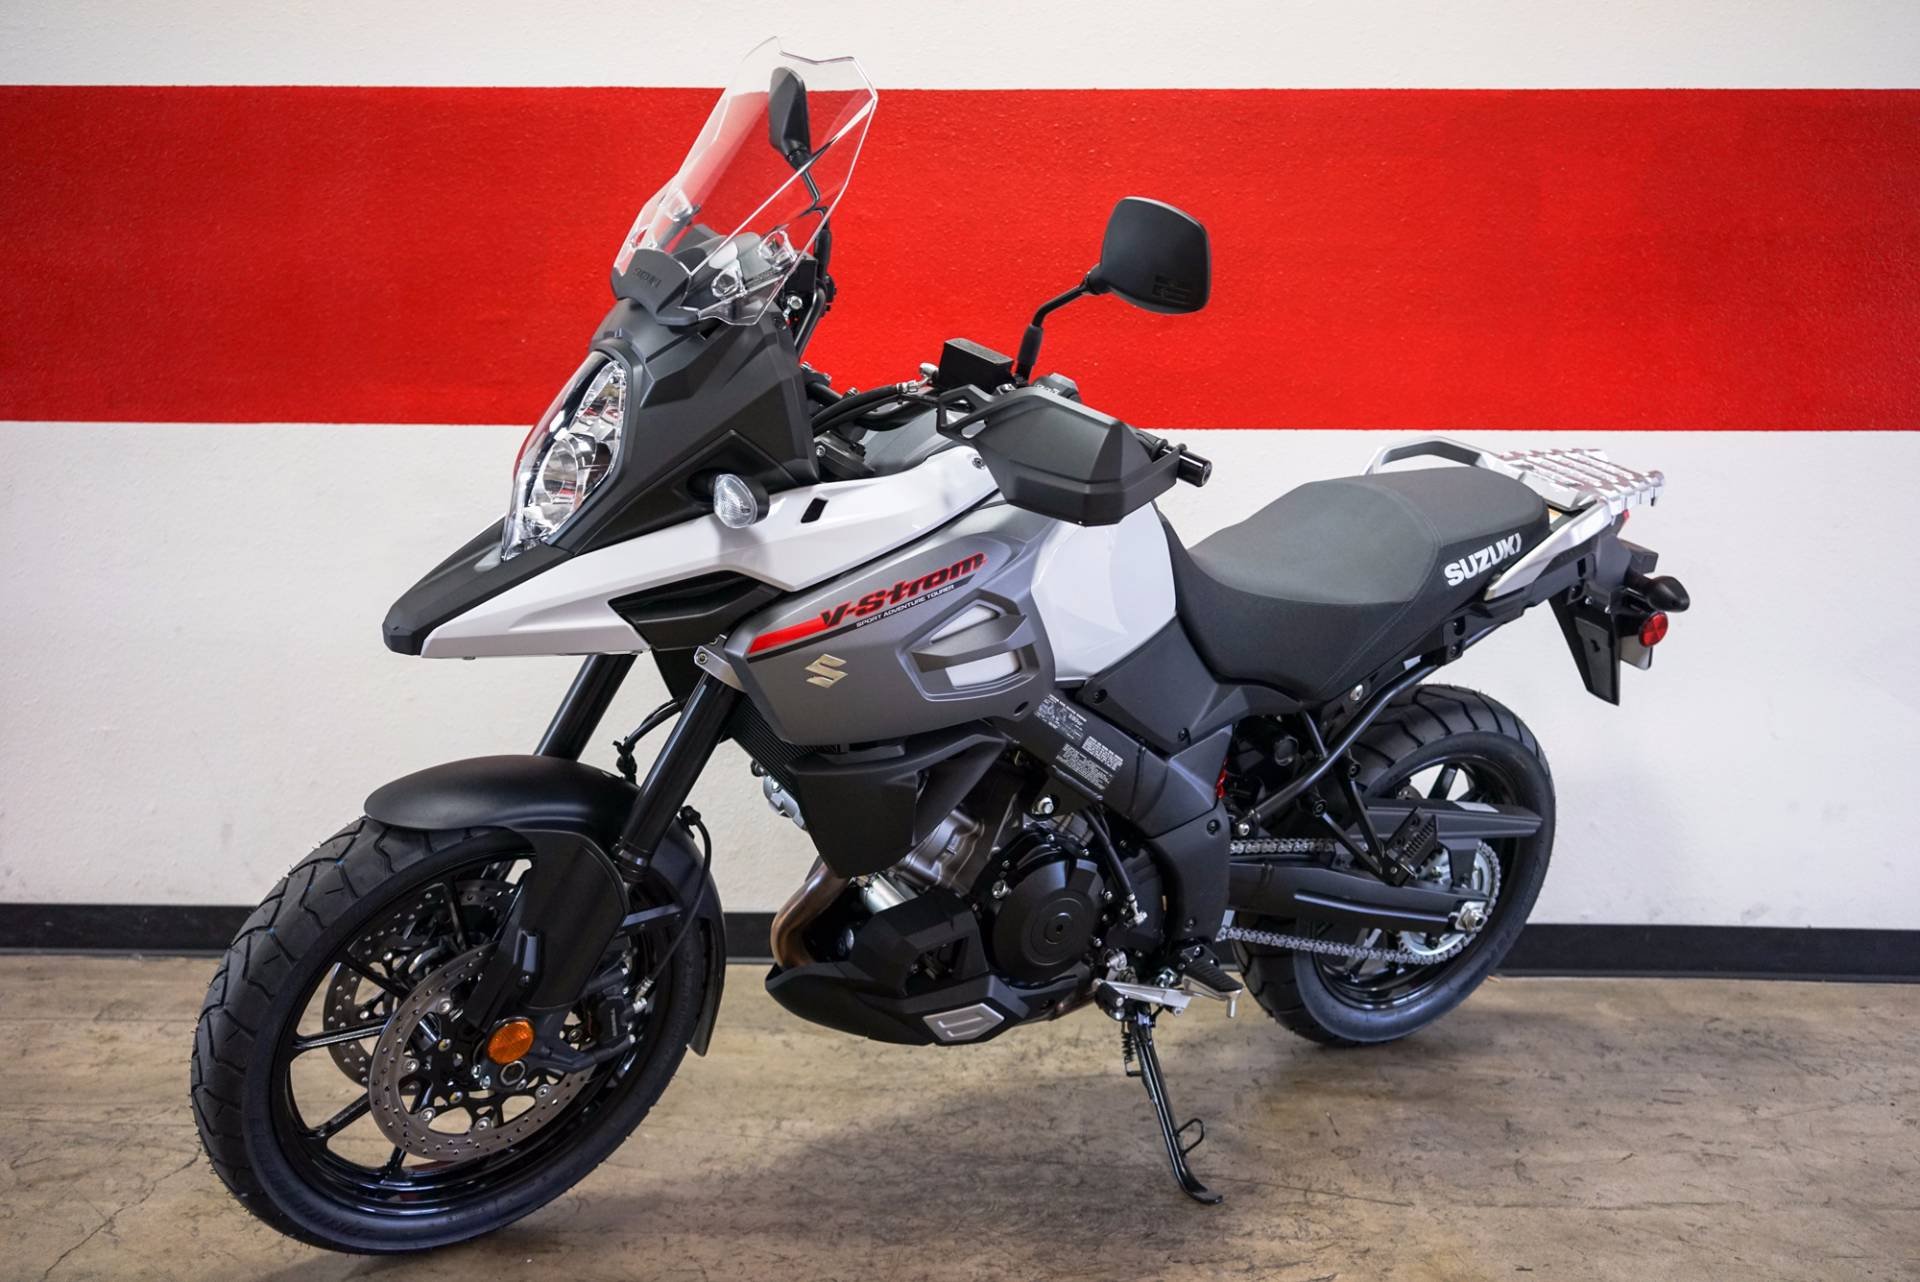 2018 Suzuki V-Strom 1000 in Brea, California